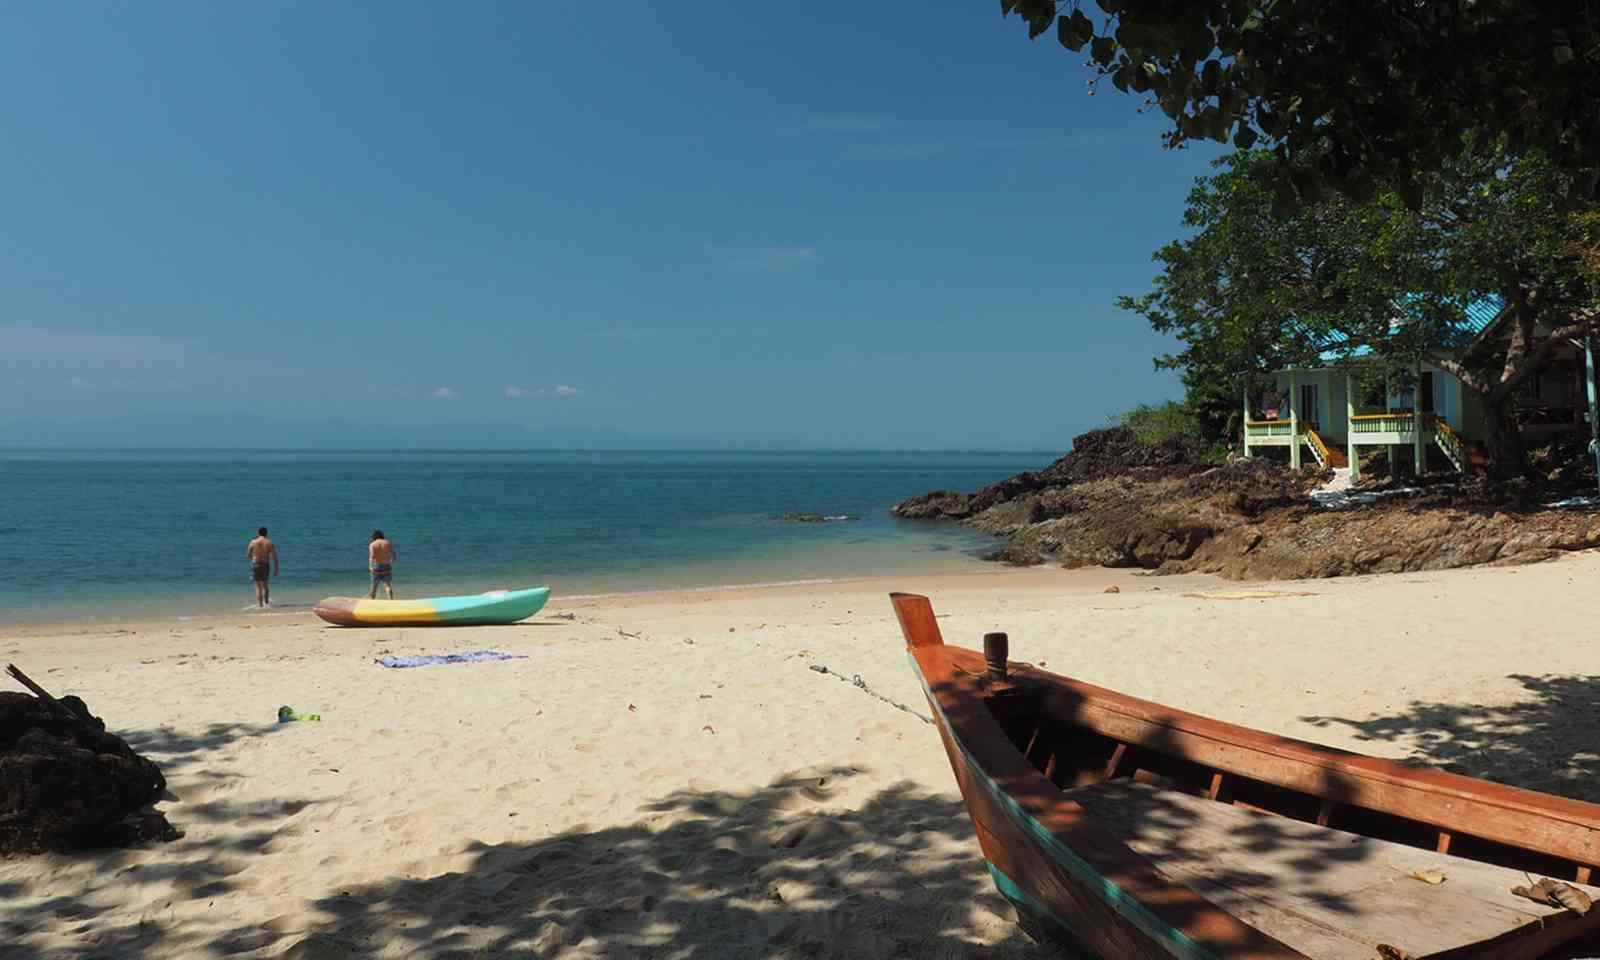 The beach at Ko Chang (Liz Cleere/Jamie Furlong)